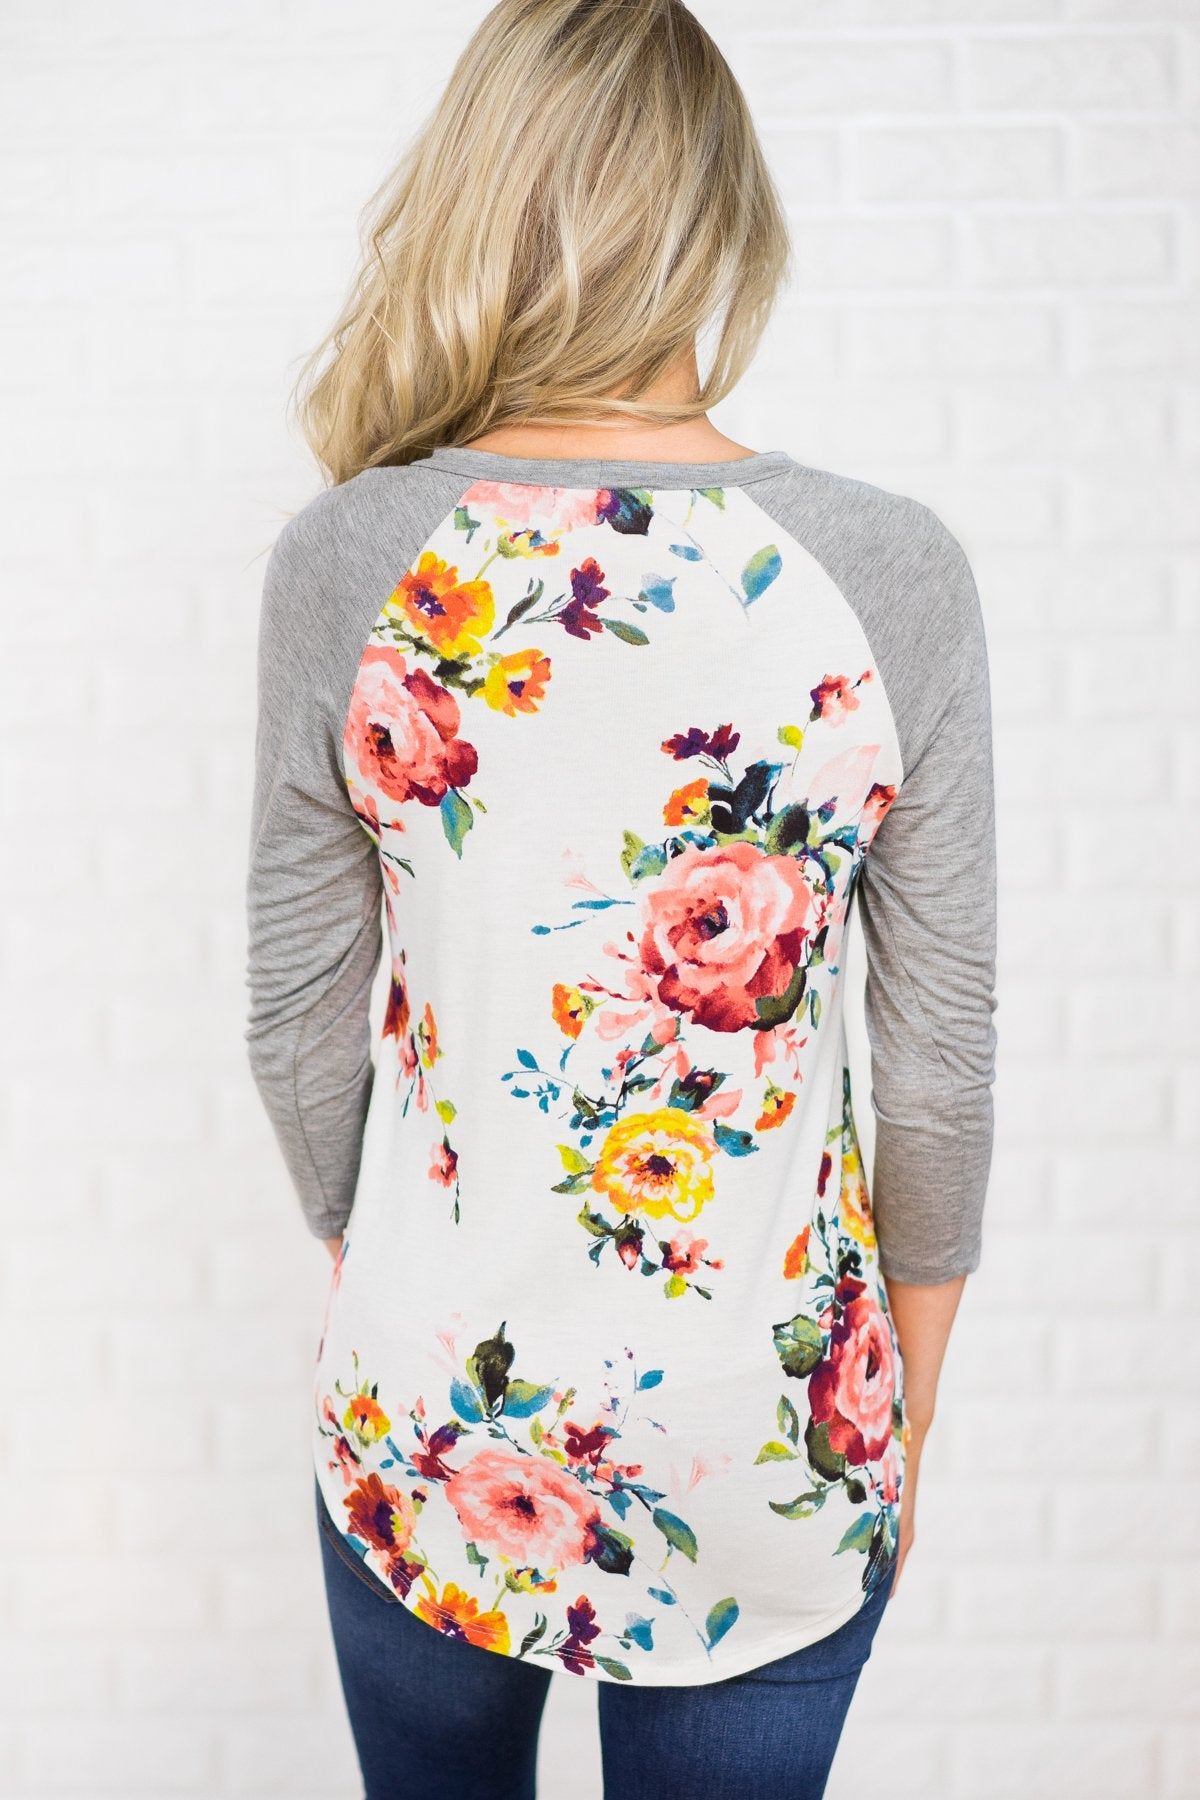 Dreams of You Floral Baseball Top - Grey